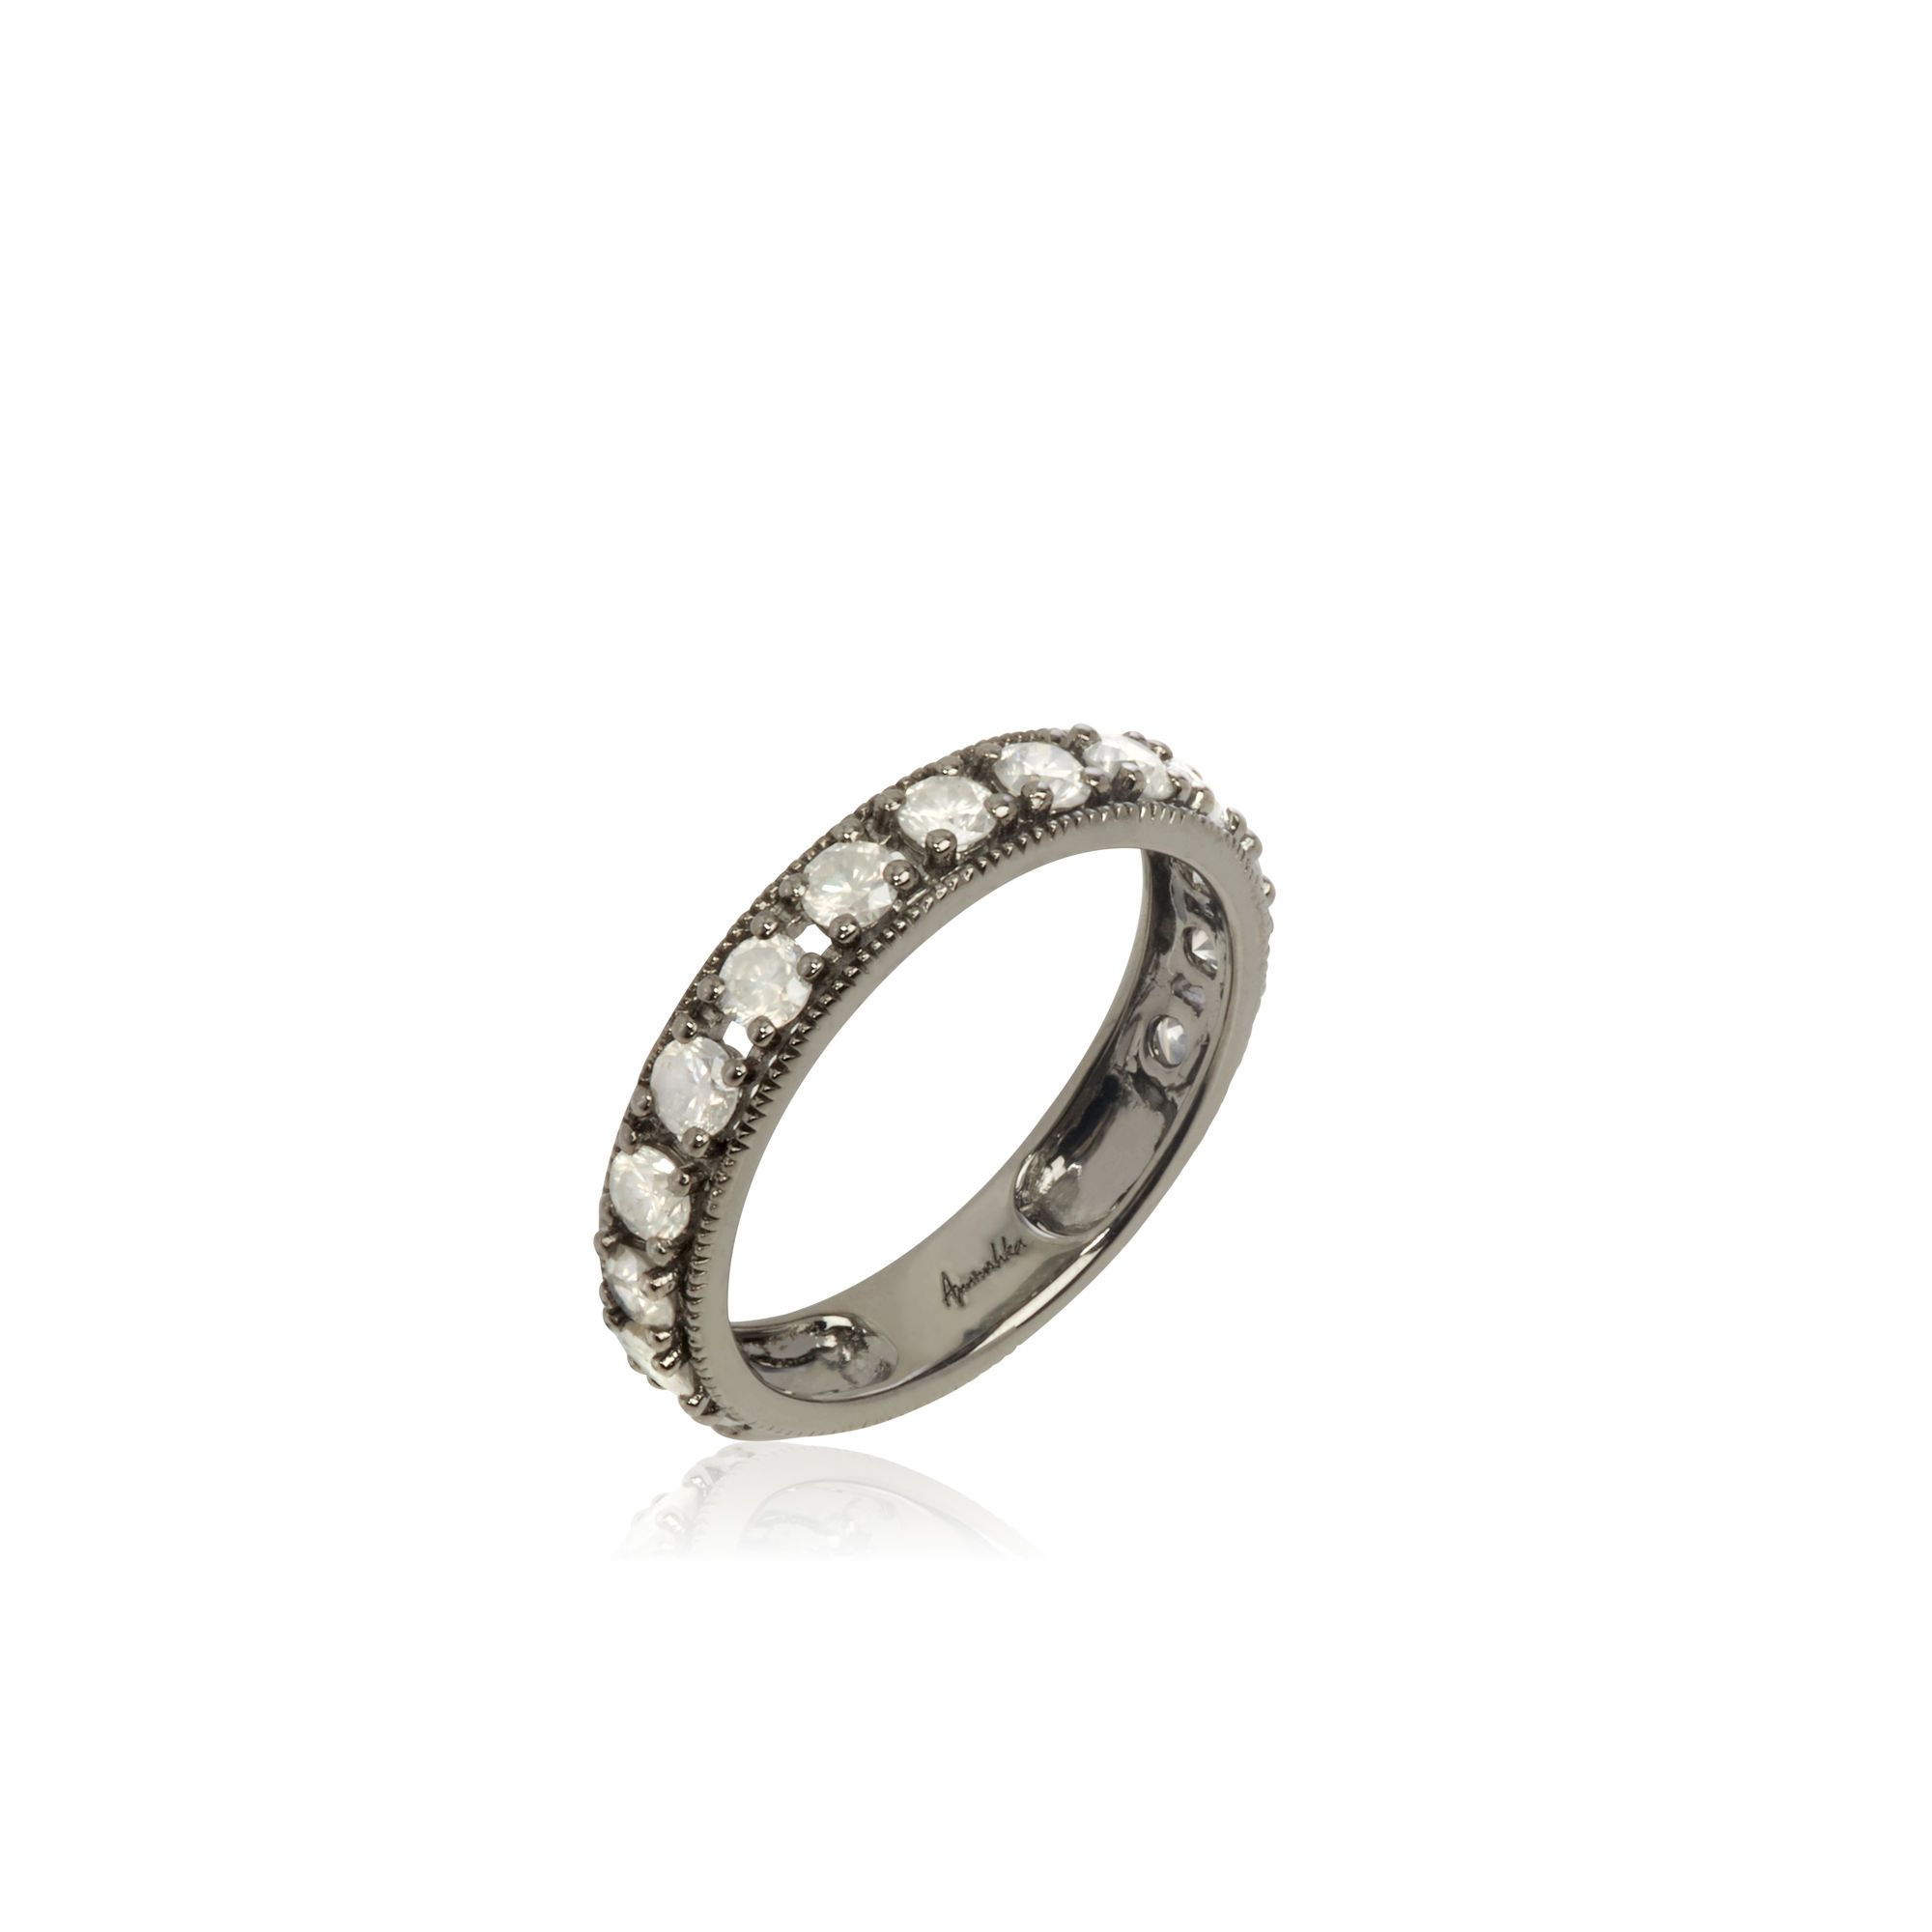 b699096ed7bcf Dusty Diamonds 18ct White Gold Icy Diamond Eternity Ring — Annoushka UK